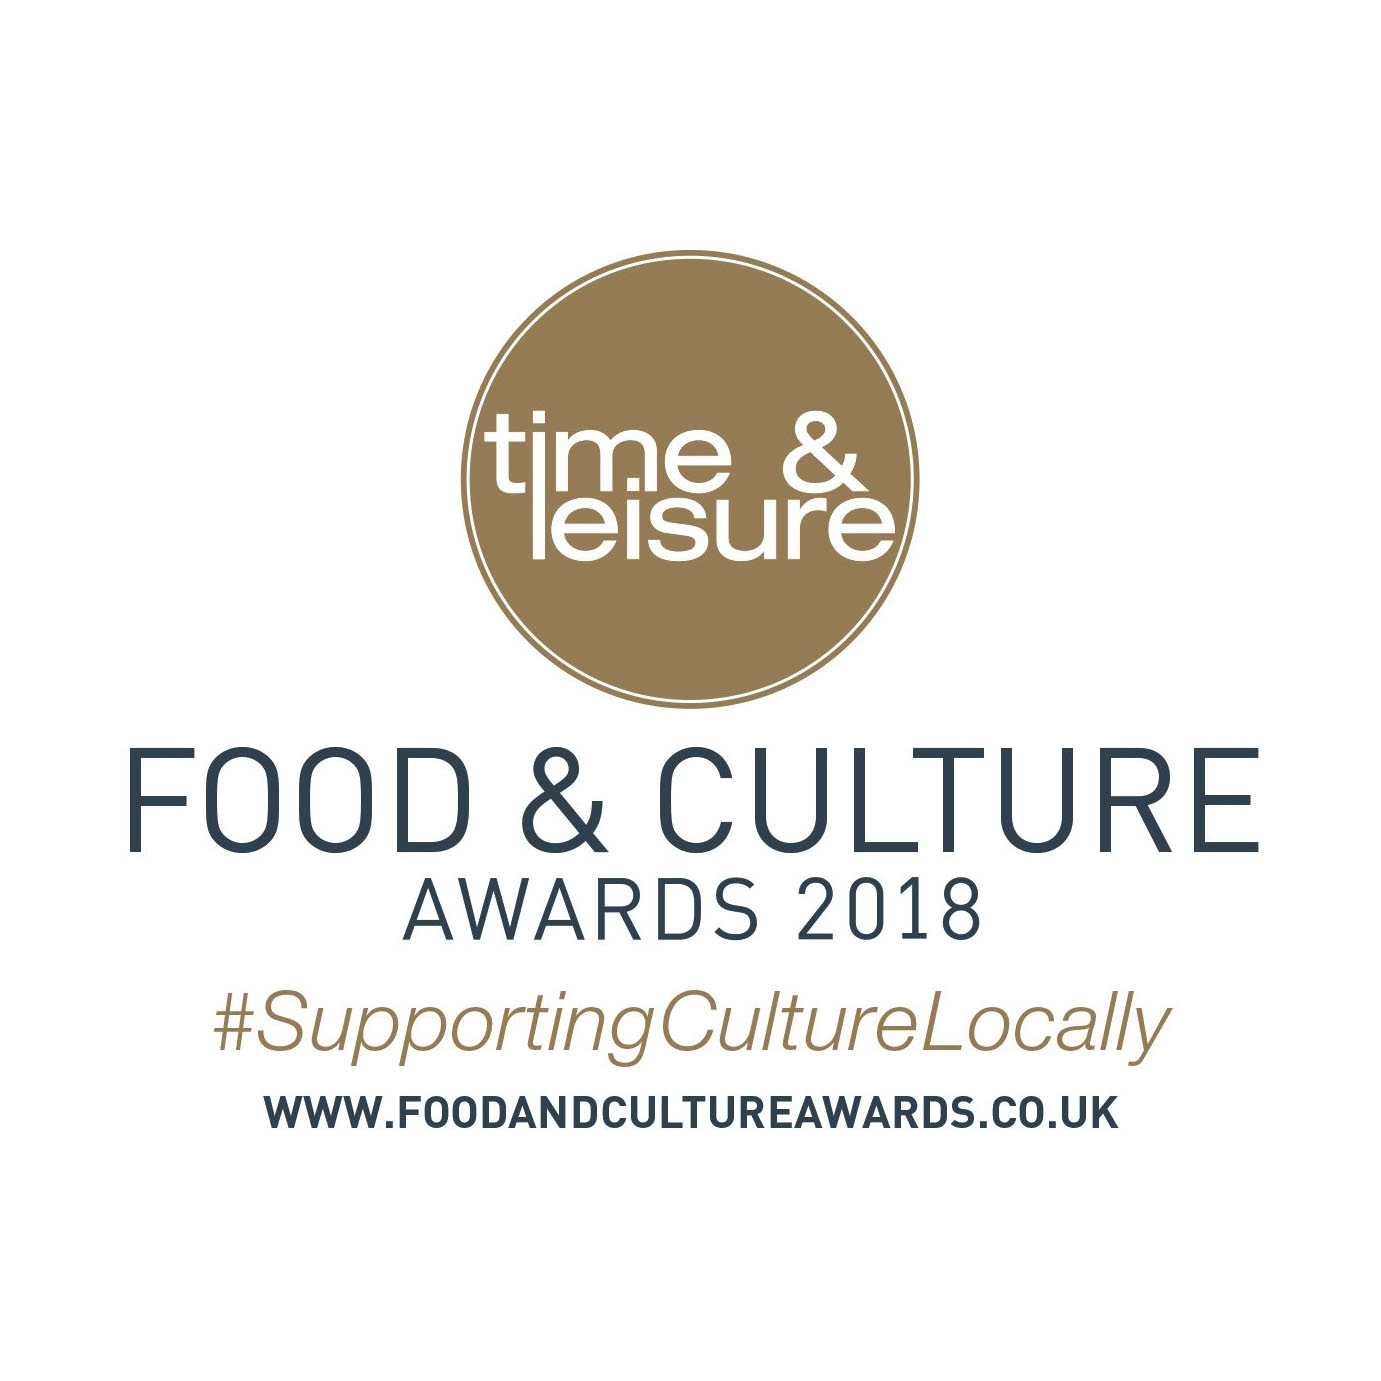 Time & Leisure Food and Culture Awards 2018